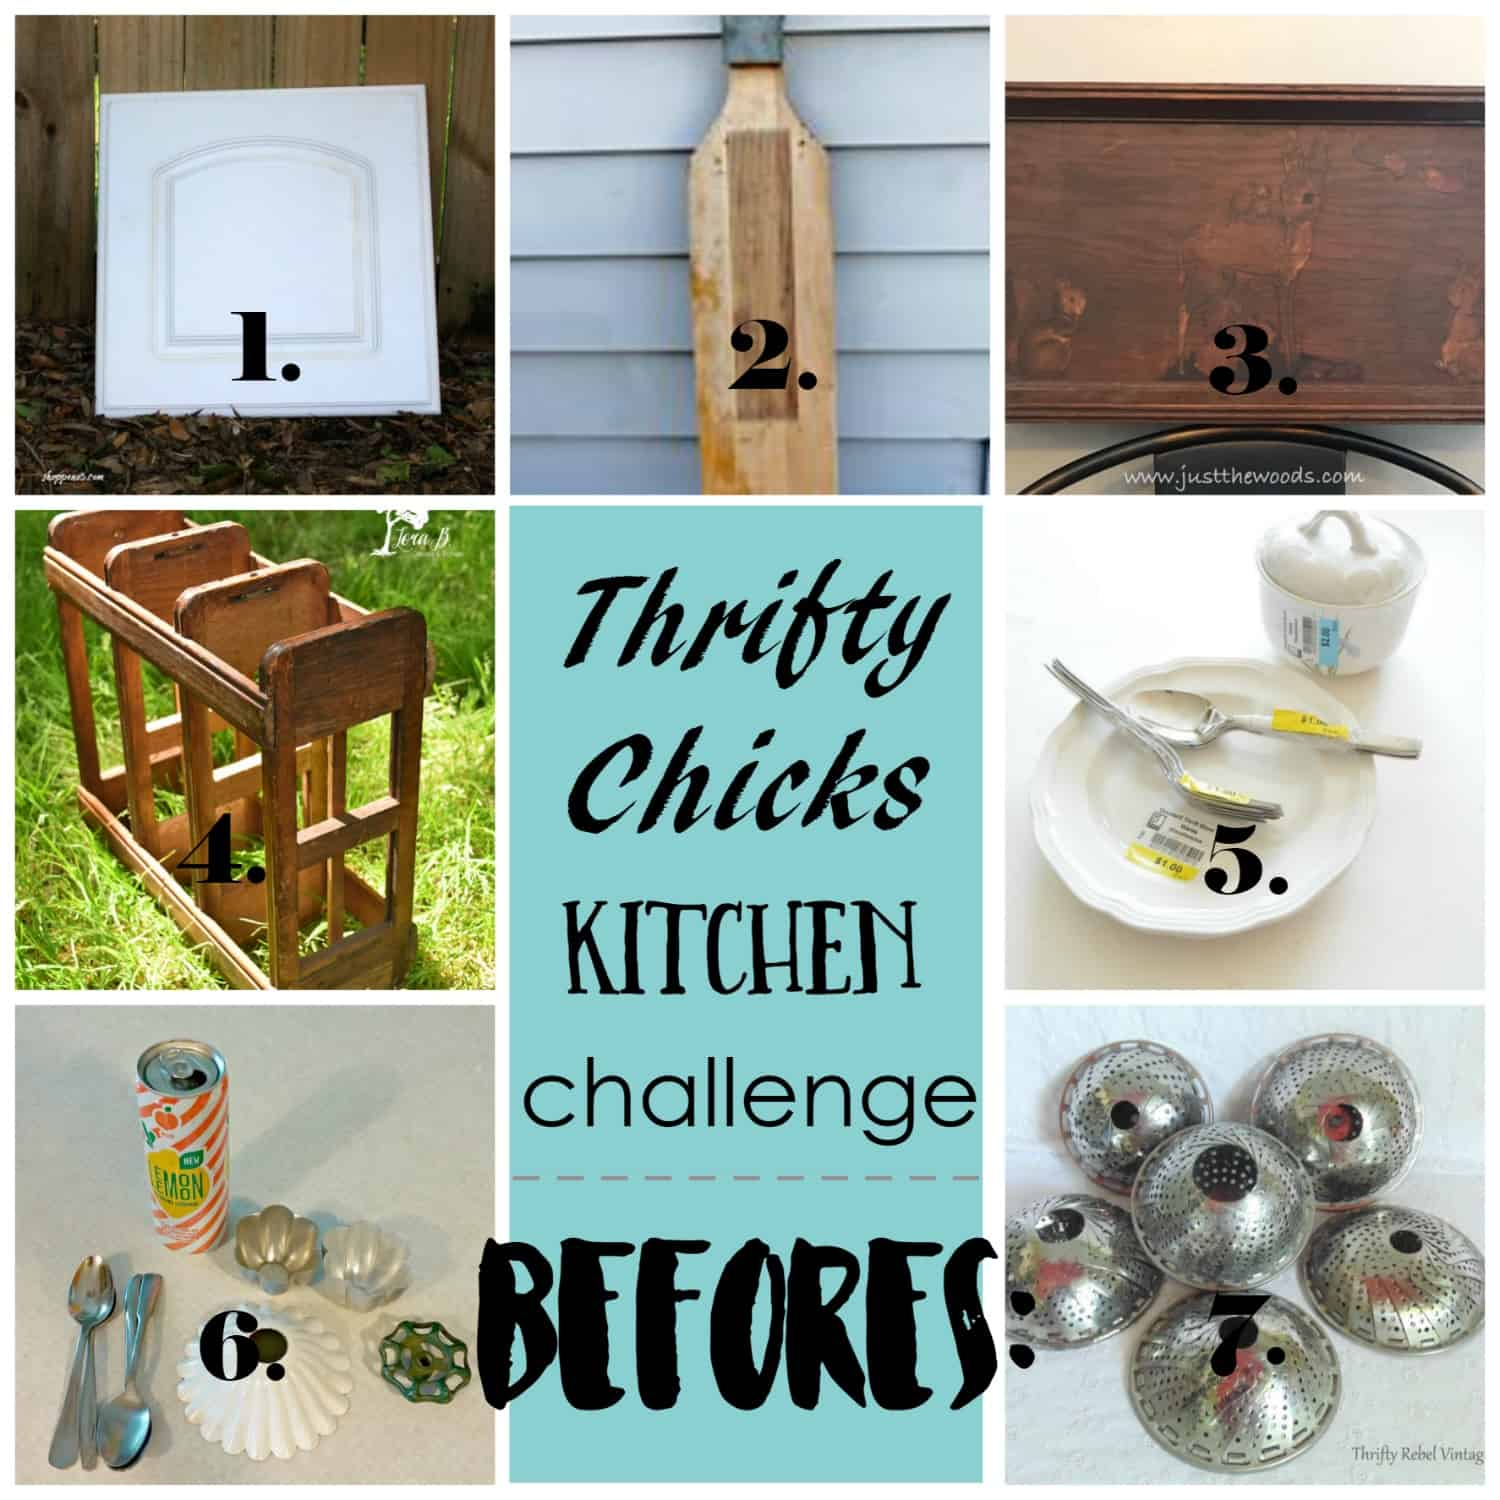 Thrifty Chicks collage